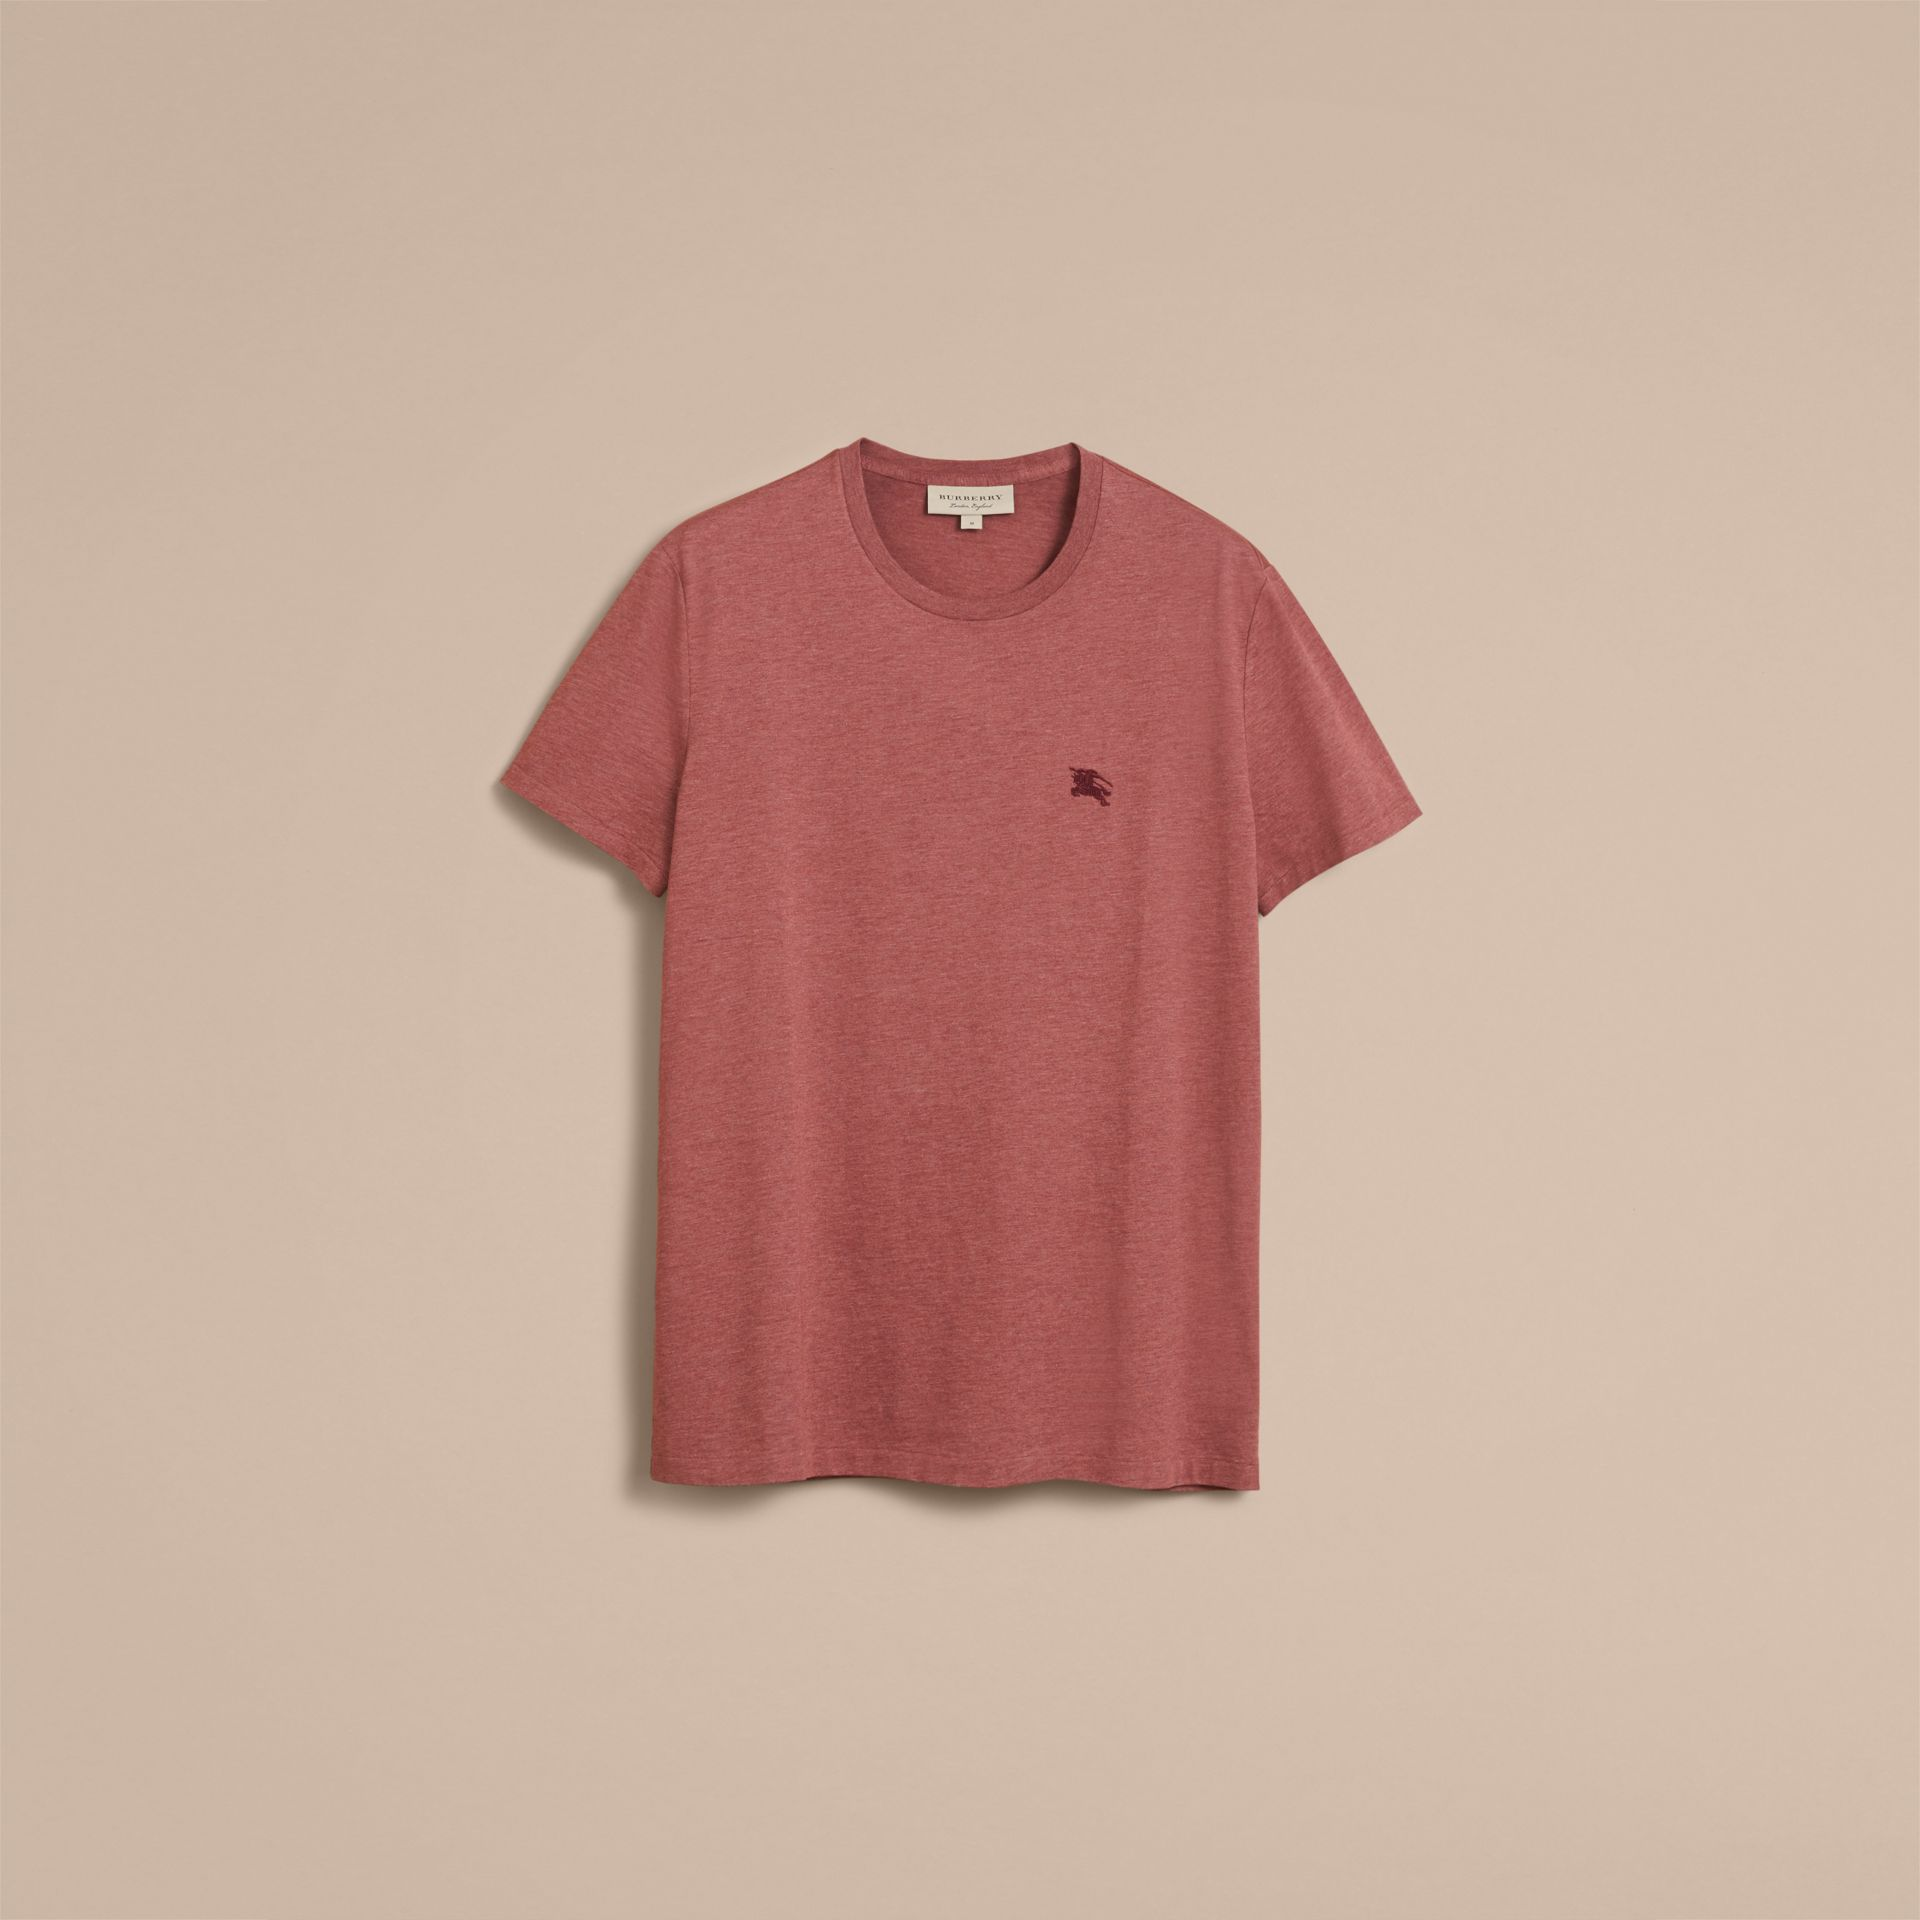 Cotton Jersey T-shirt in Russet Melange - Men | Burberry - gallery image 4